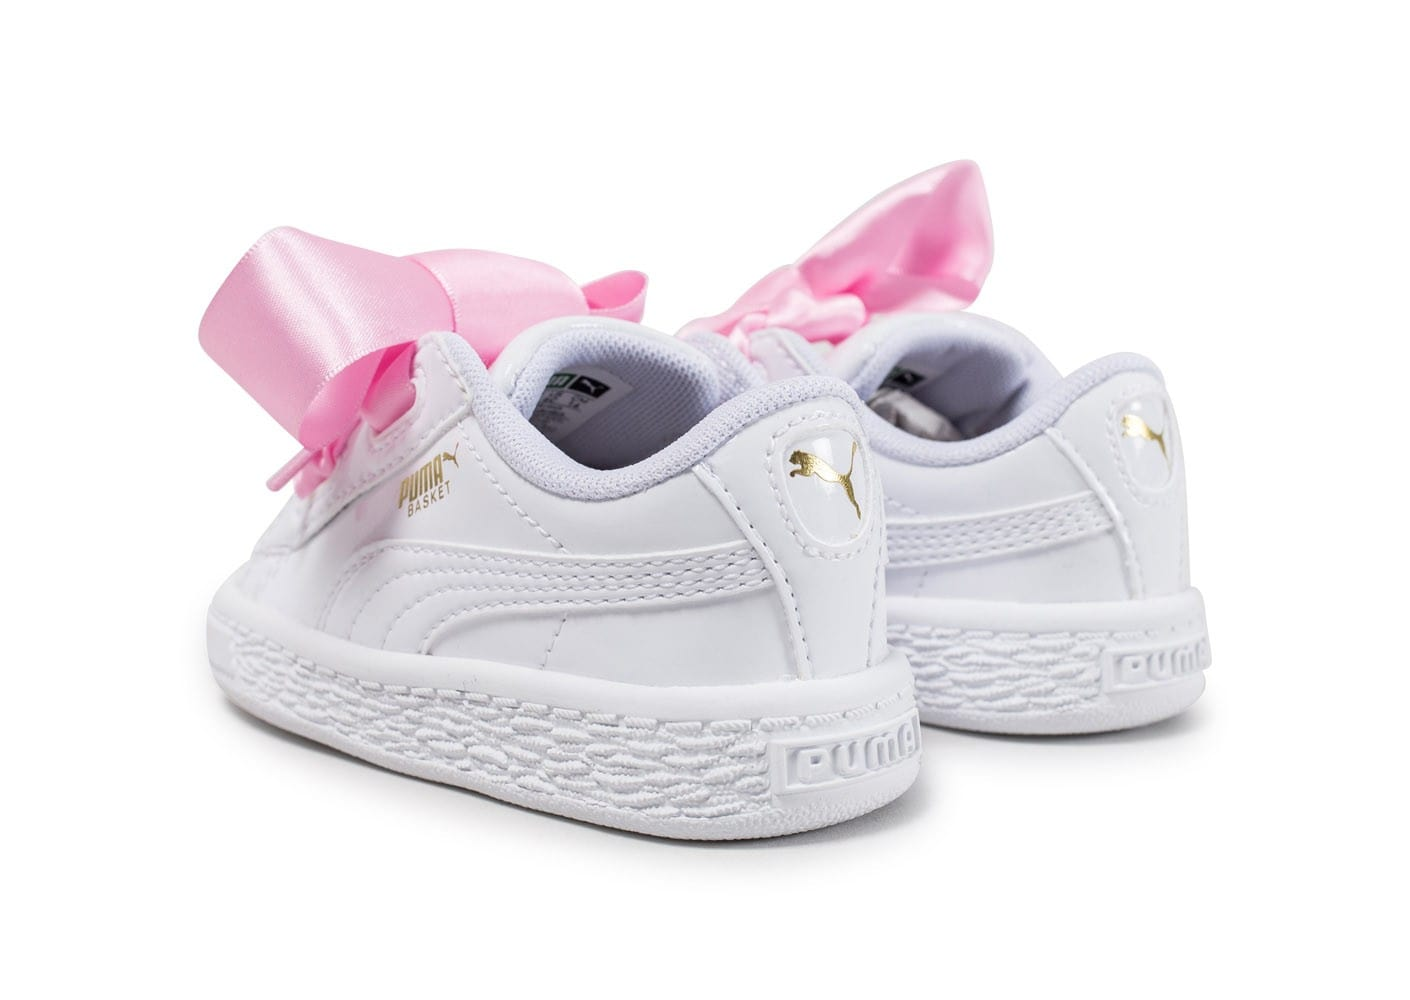 puma heart patent b b blanche chaussures enfant chausport. Black Bedroom Furniture Sets. Home Design Ideas